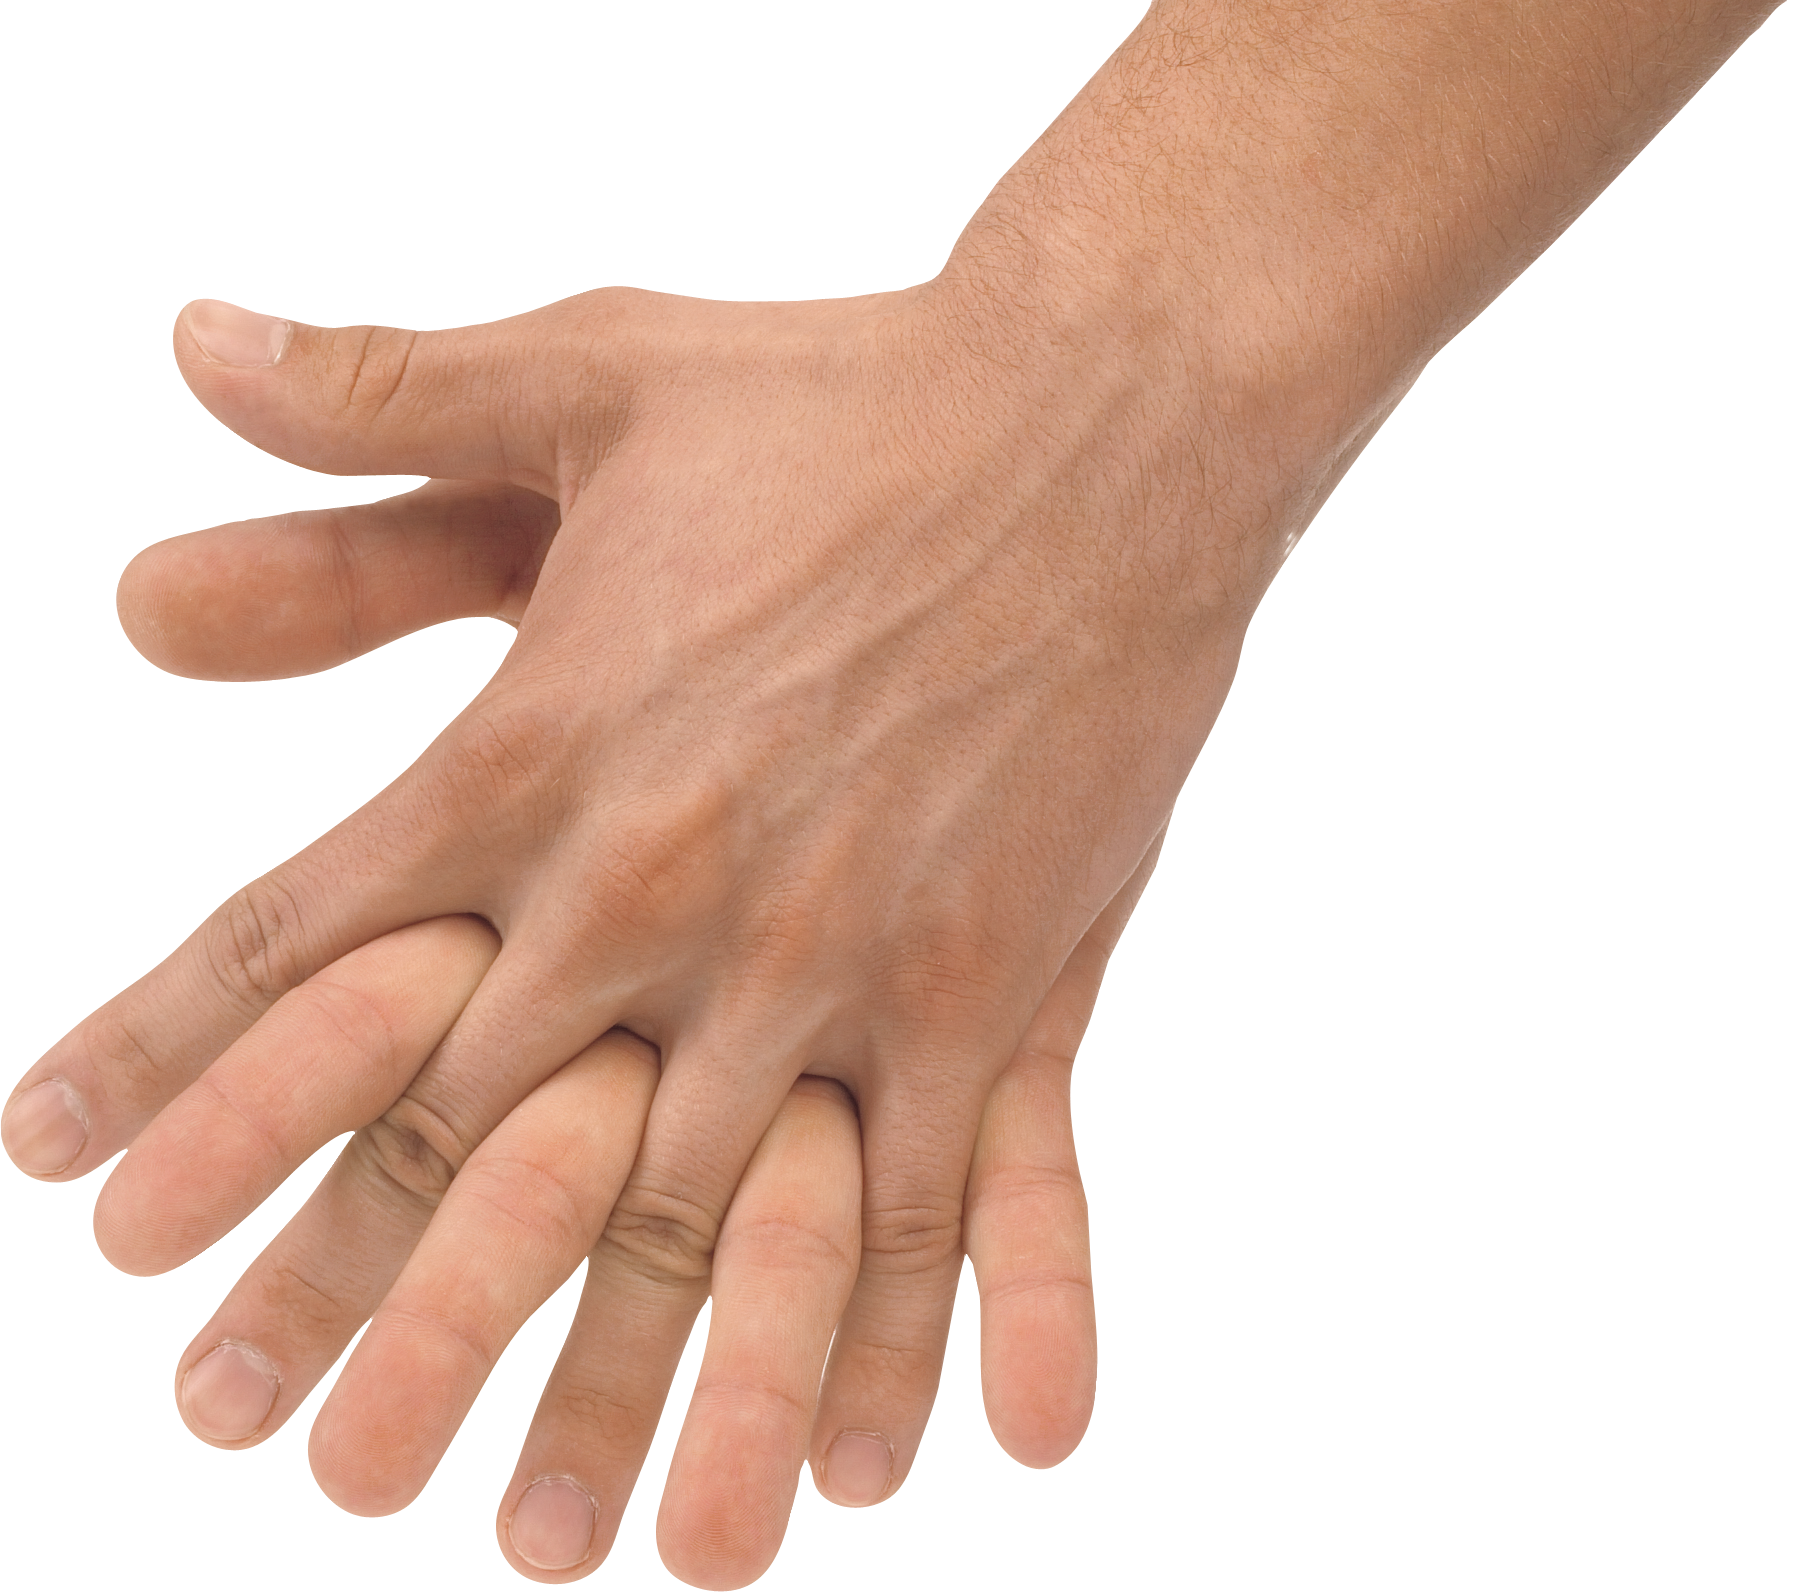 uploads hands hands PNG957 5